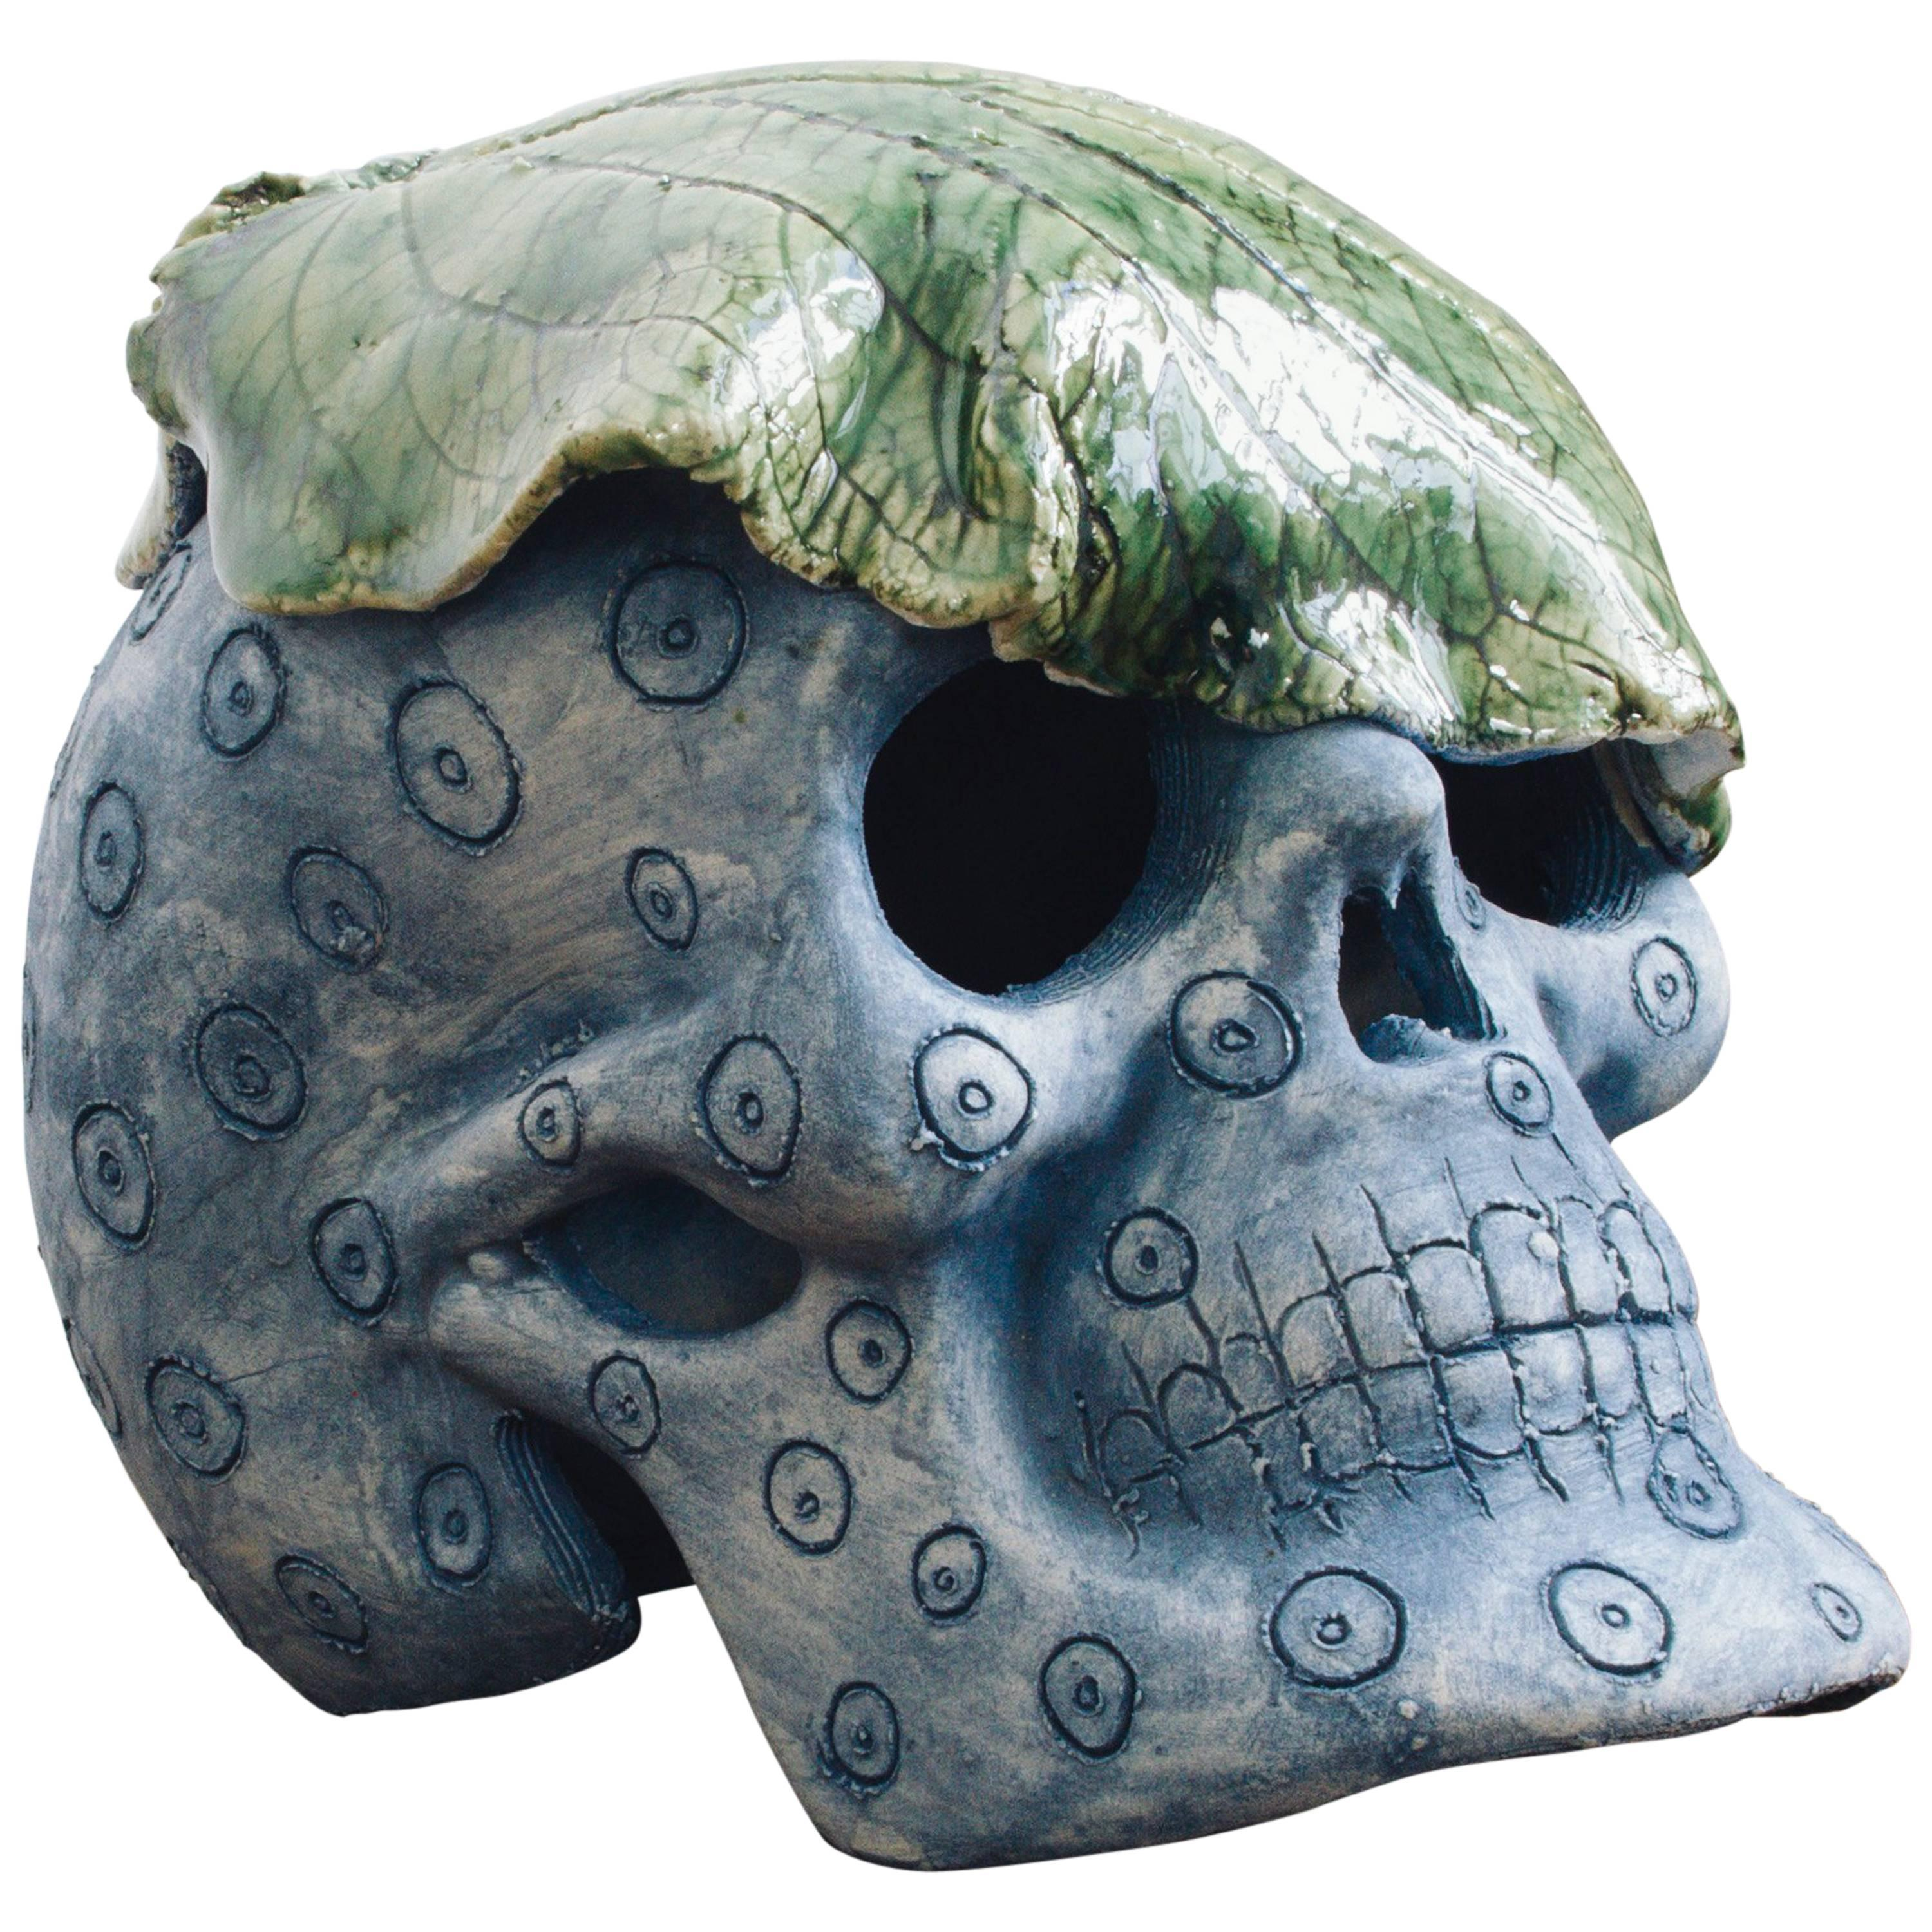 Mexican Day Of The Dead Ceramic Skull Folk Art Sculpture Edition 1 30 For Sale At 1stdibs